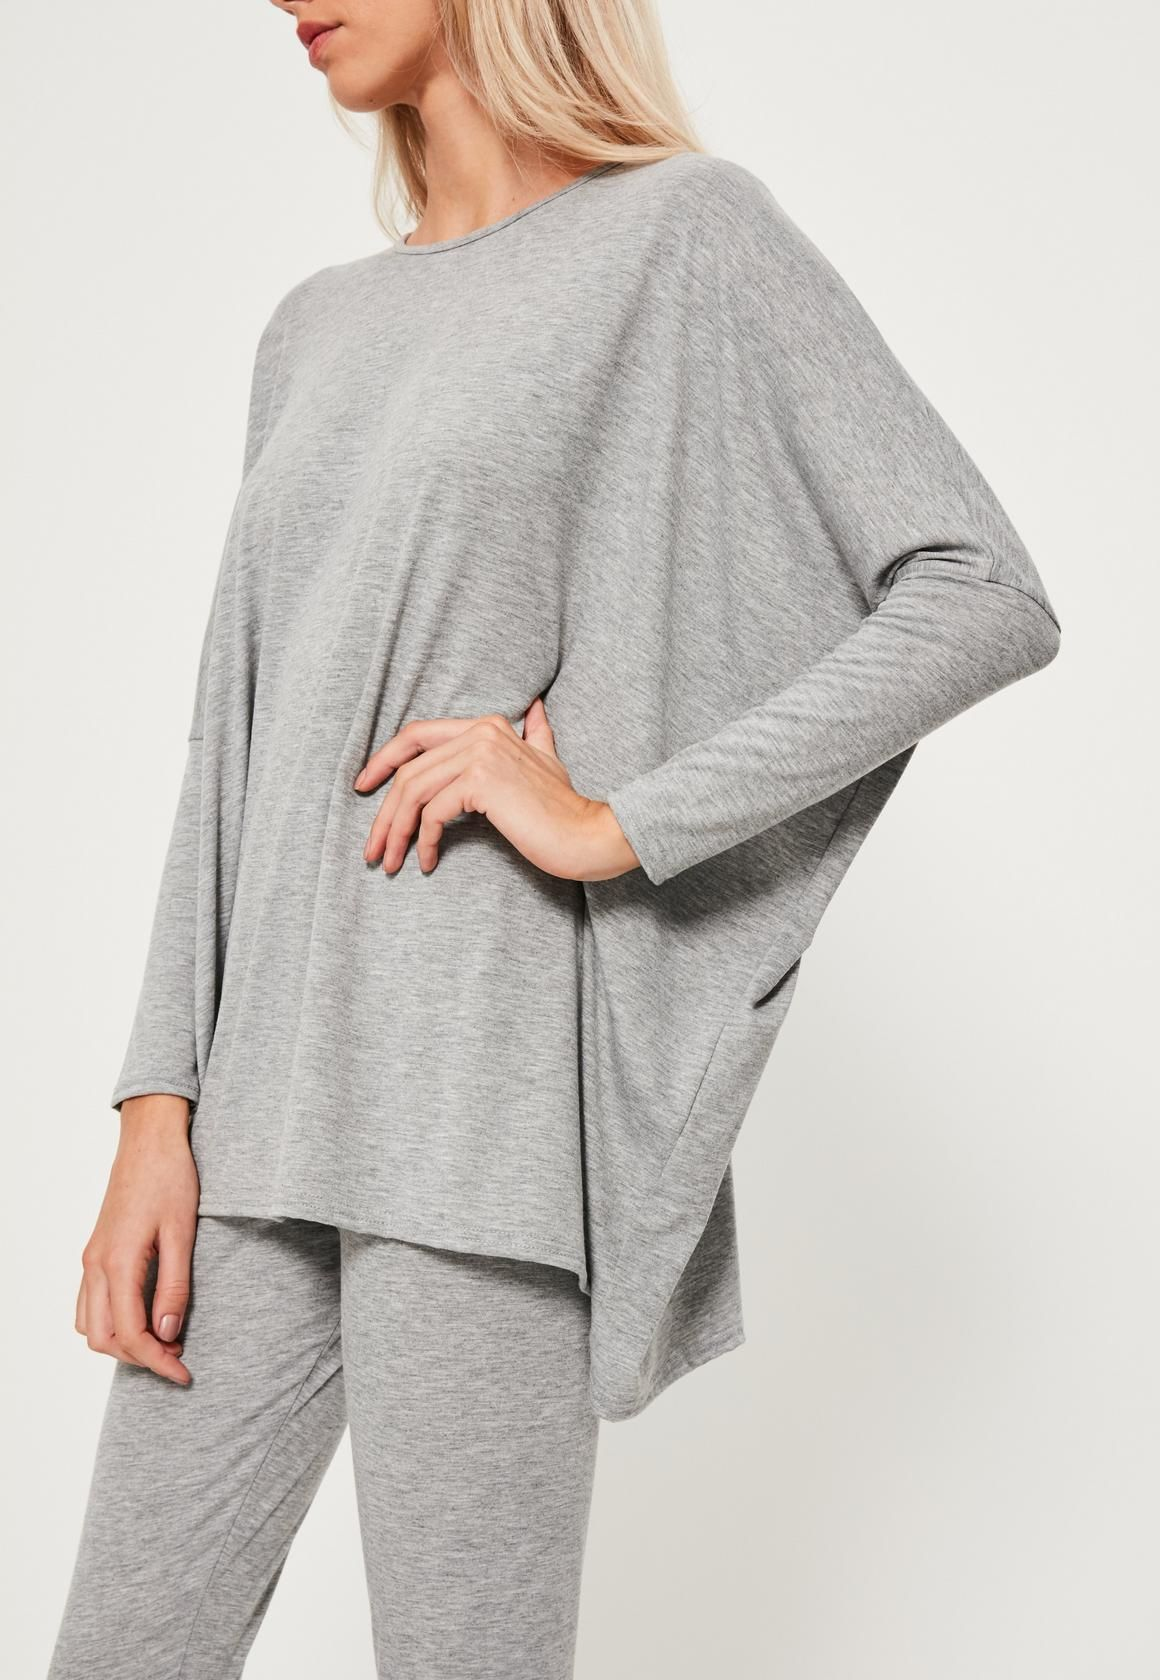 7eee3bf3 Missguided - Grey Jersey Oversized Loungewear Set | OH . BED ...